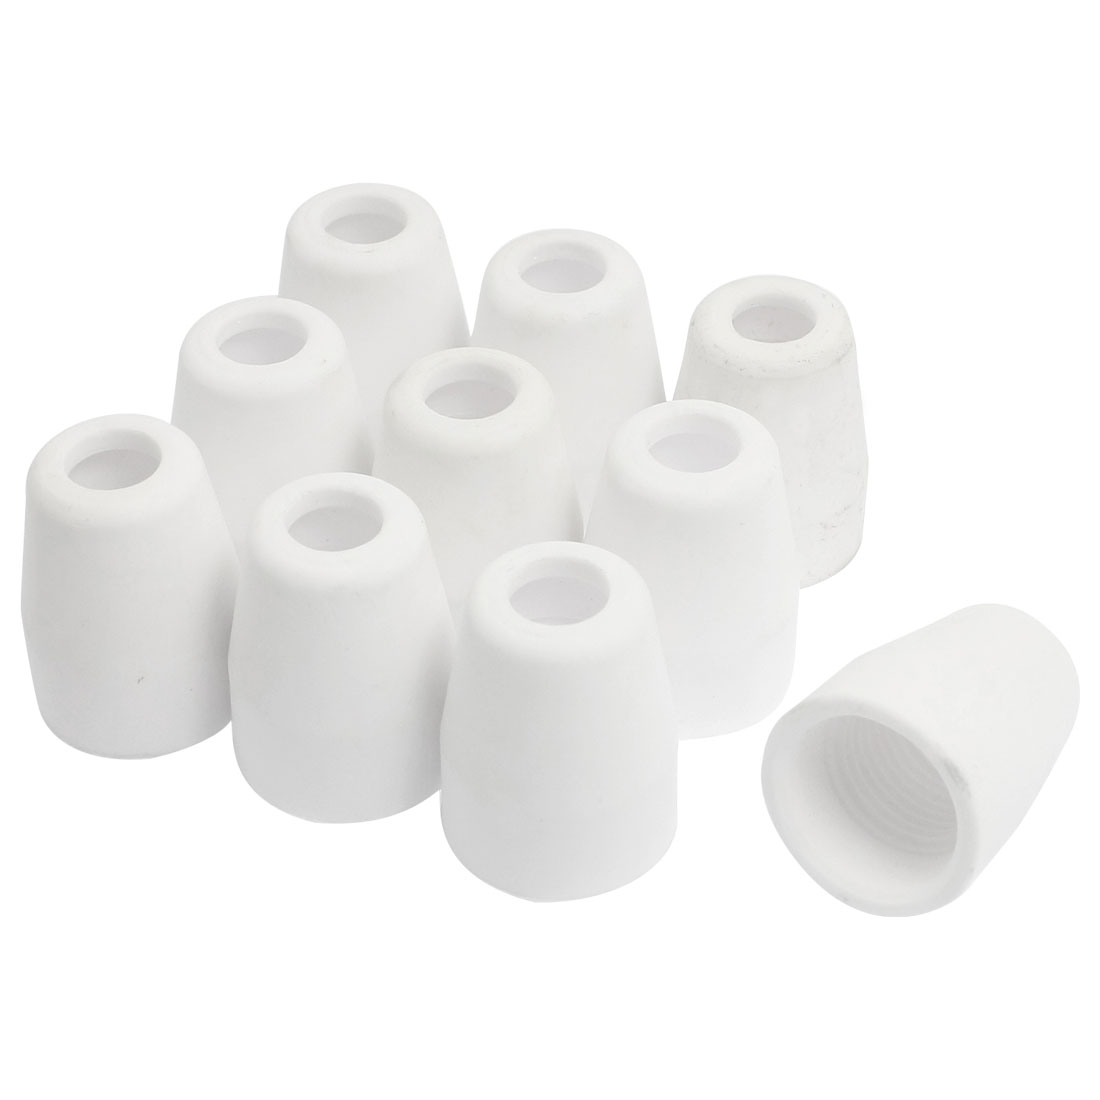 10 Pcs White Cone Shaped Ceramic Nozzles 30mm Long for TIG Torch